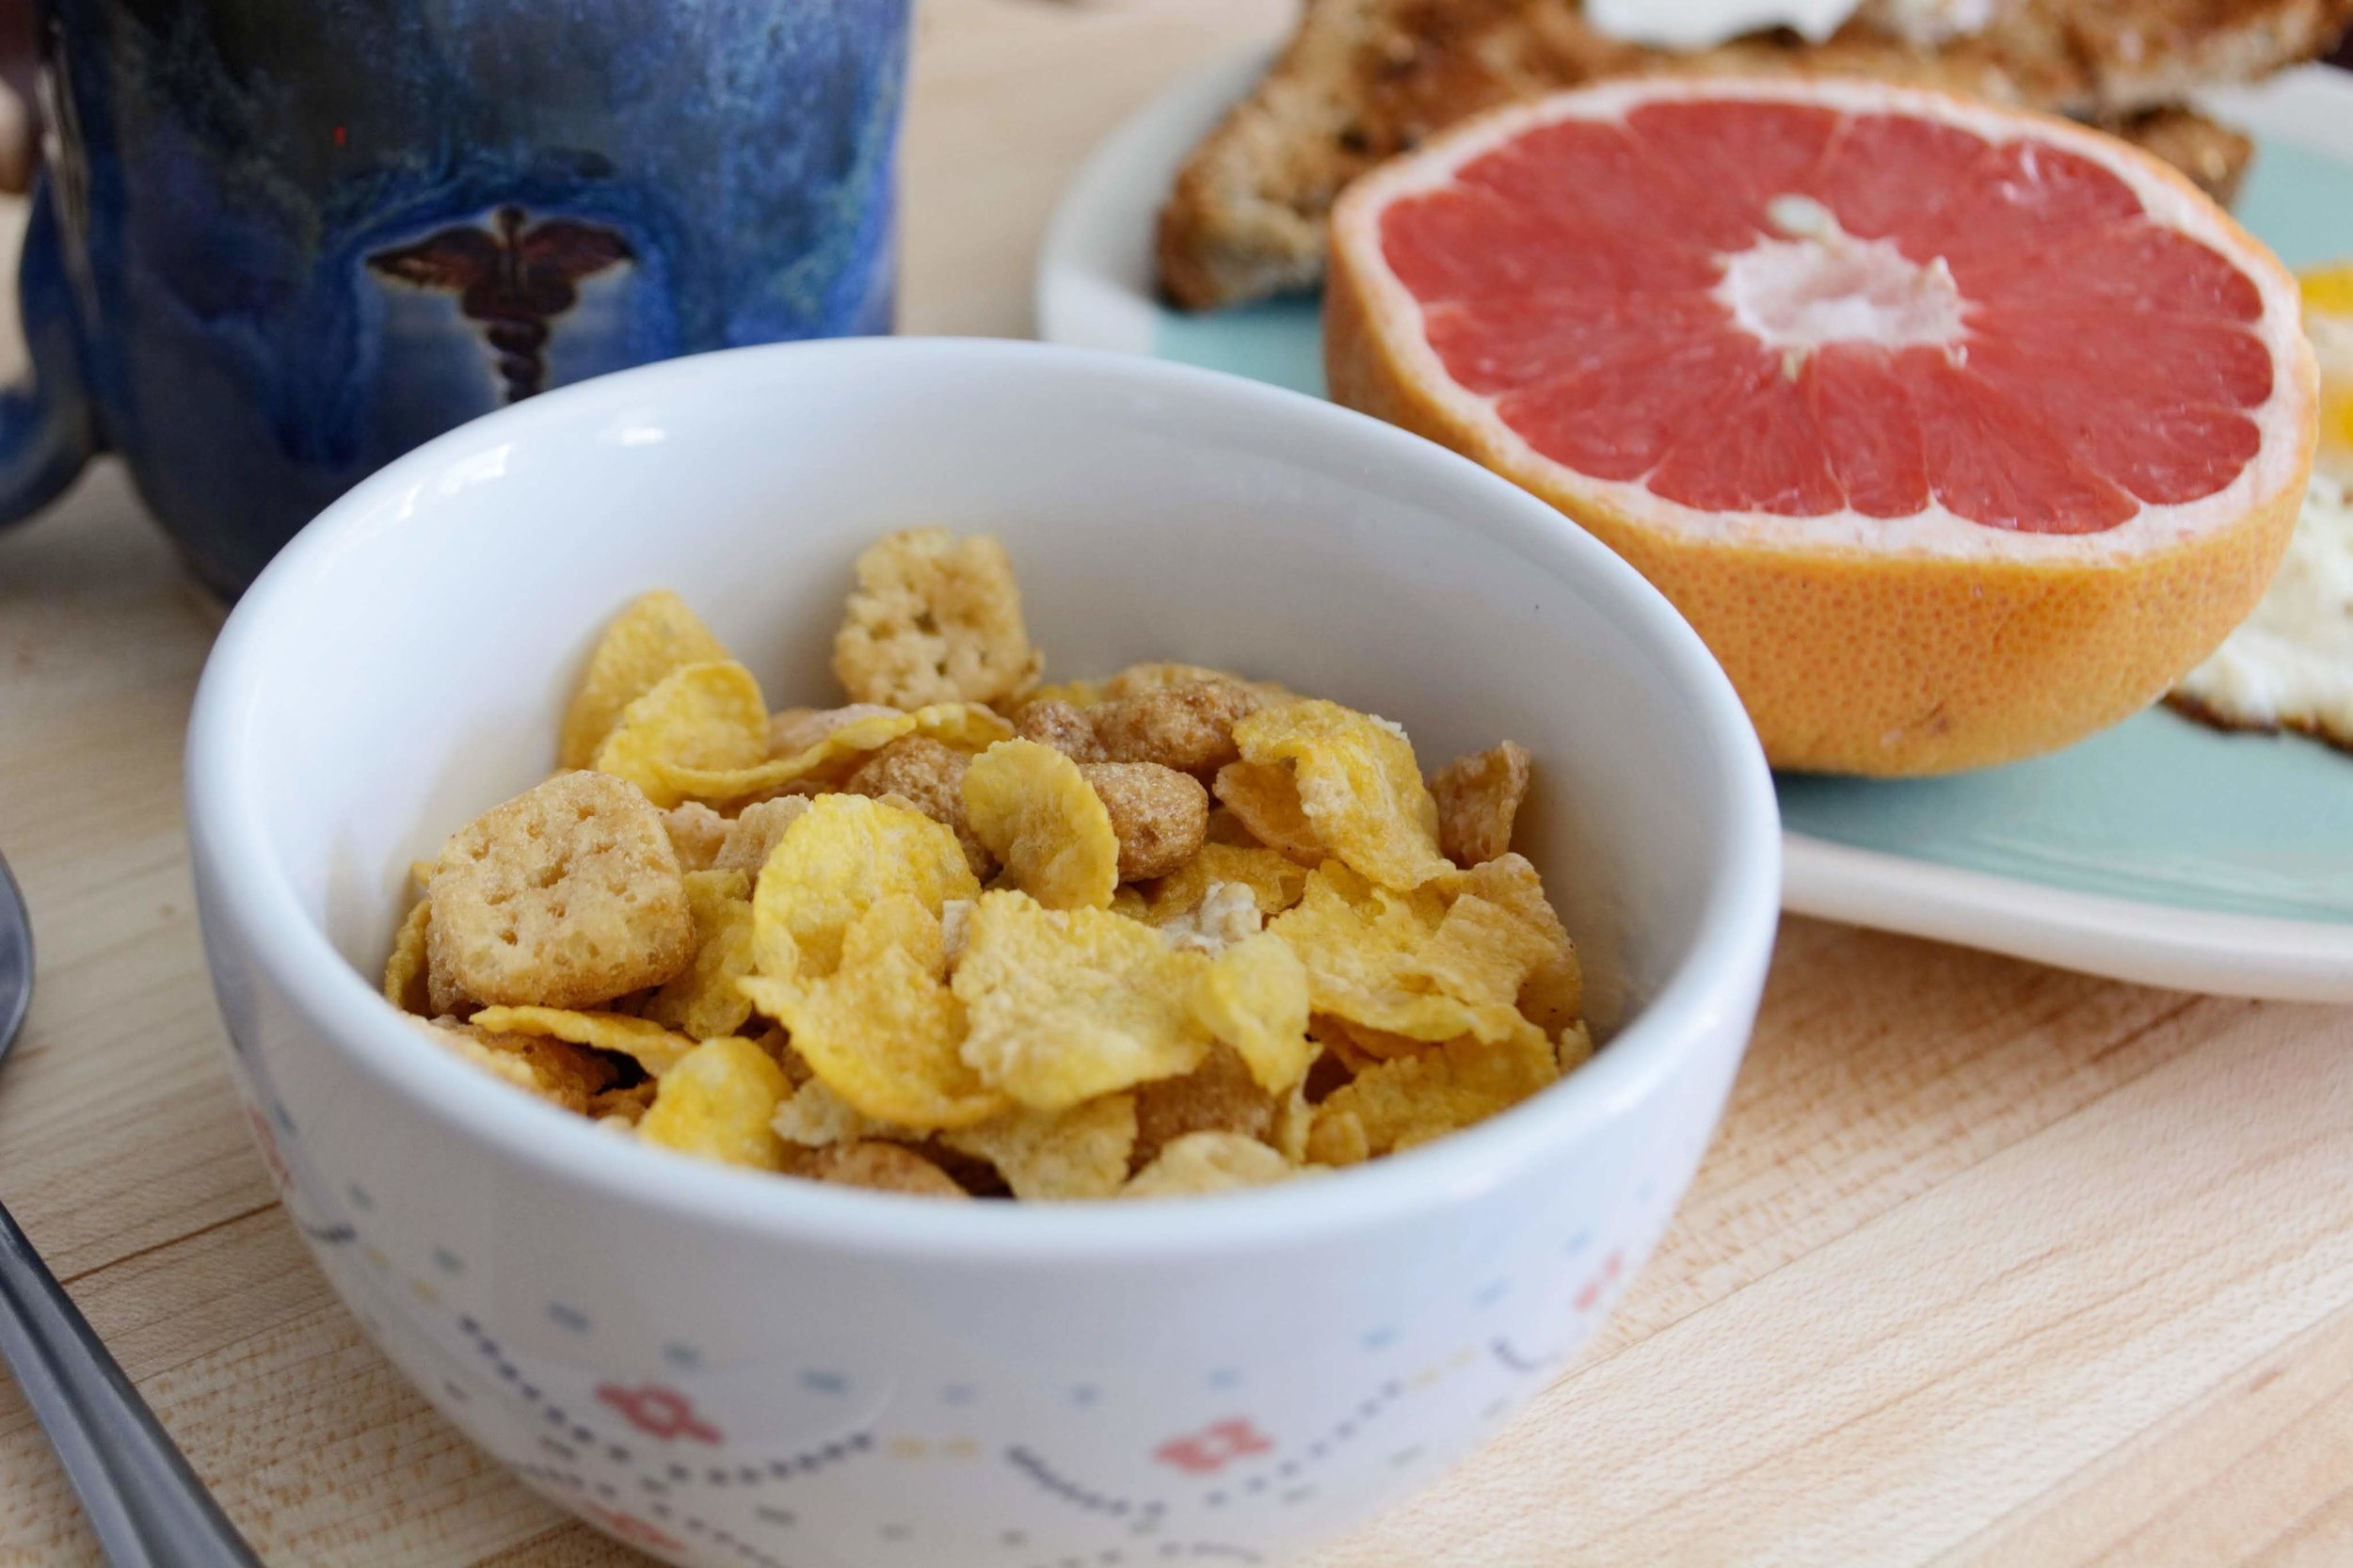 chicken-and-waffles-cereal